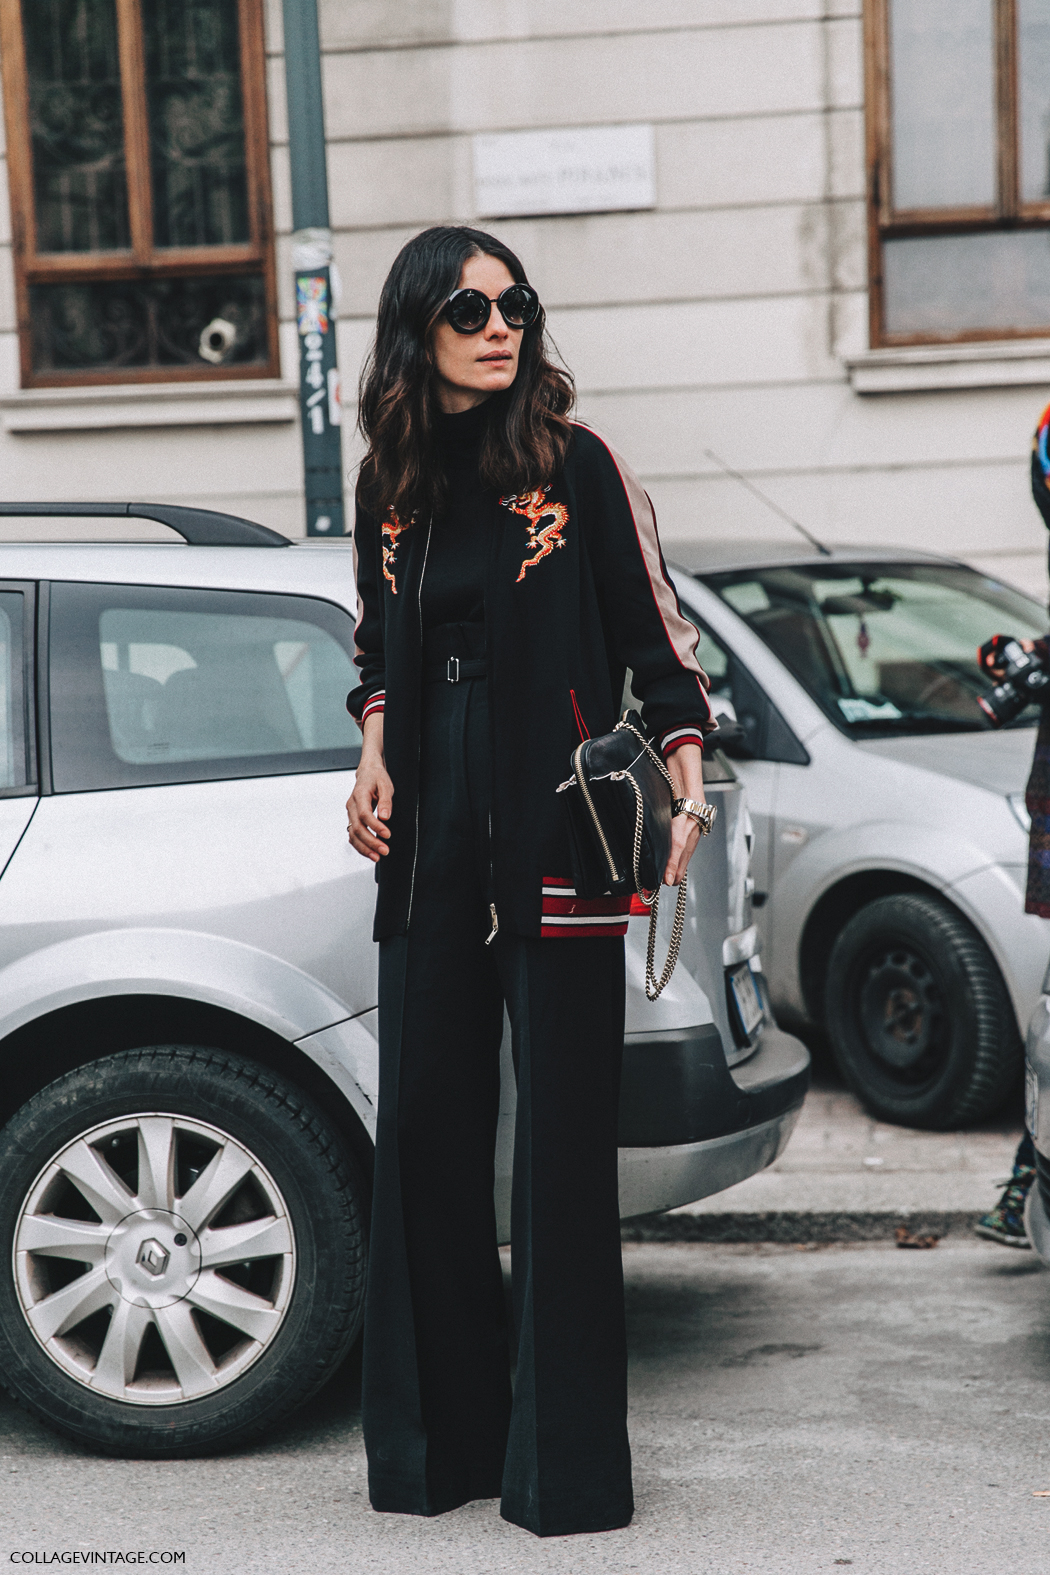 Milan_Fashion_Week_Fall_16-MFW-Street_Style-Collage_Vintage-leila_yavari-Bomber_Jacket-Black-q